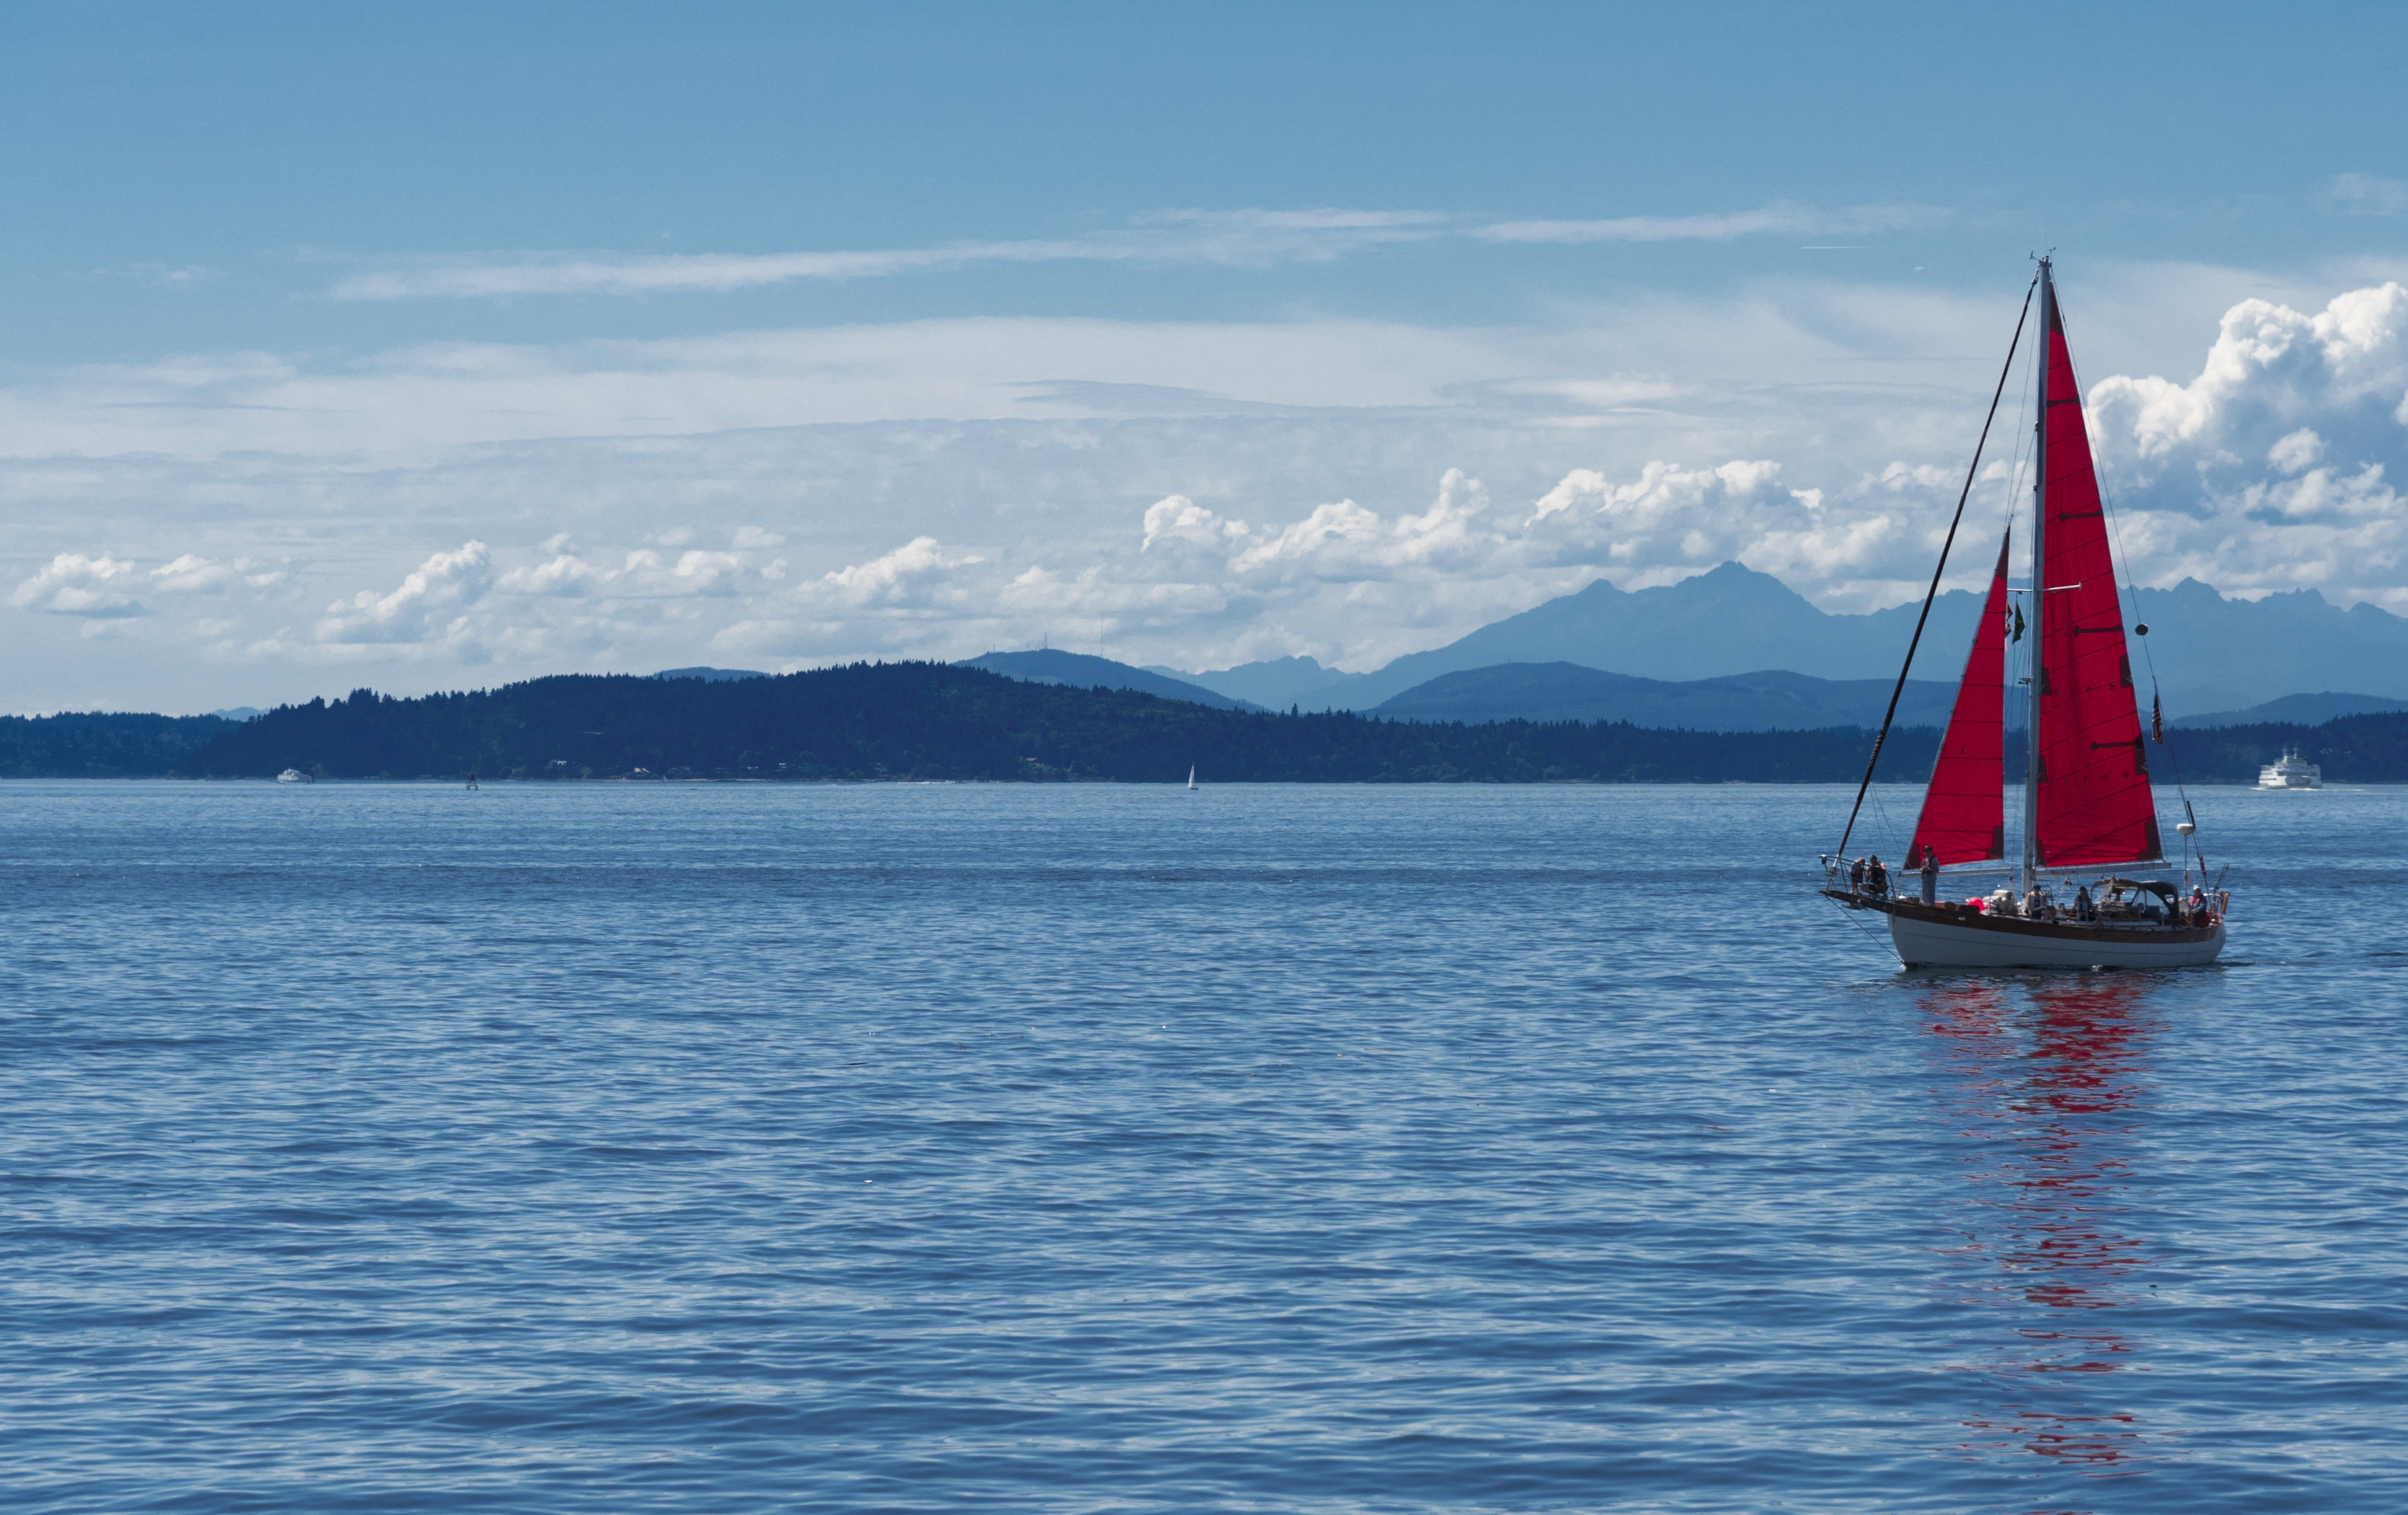 Ballard Sound View Sailboat Red Sail